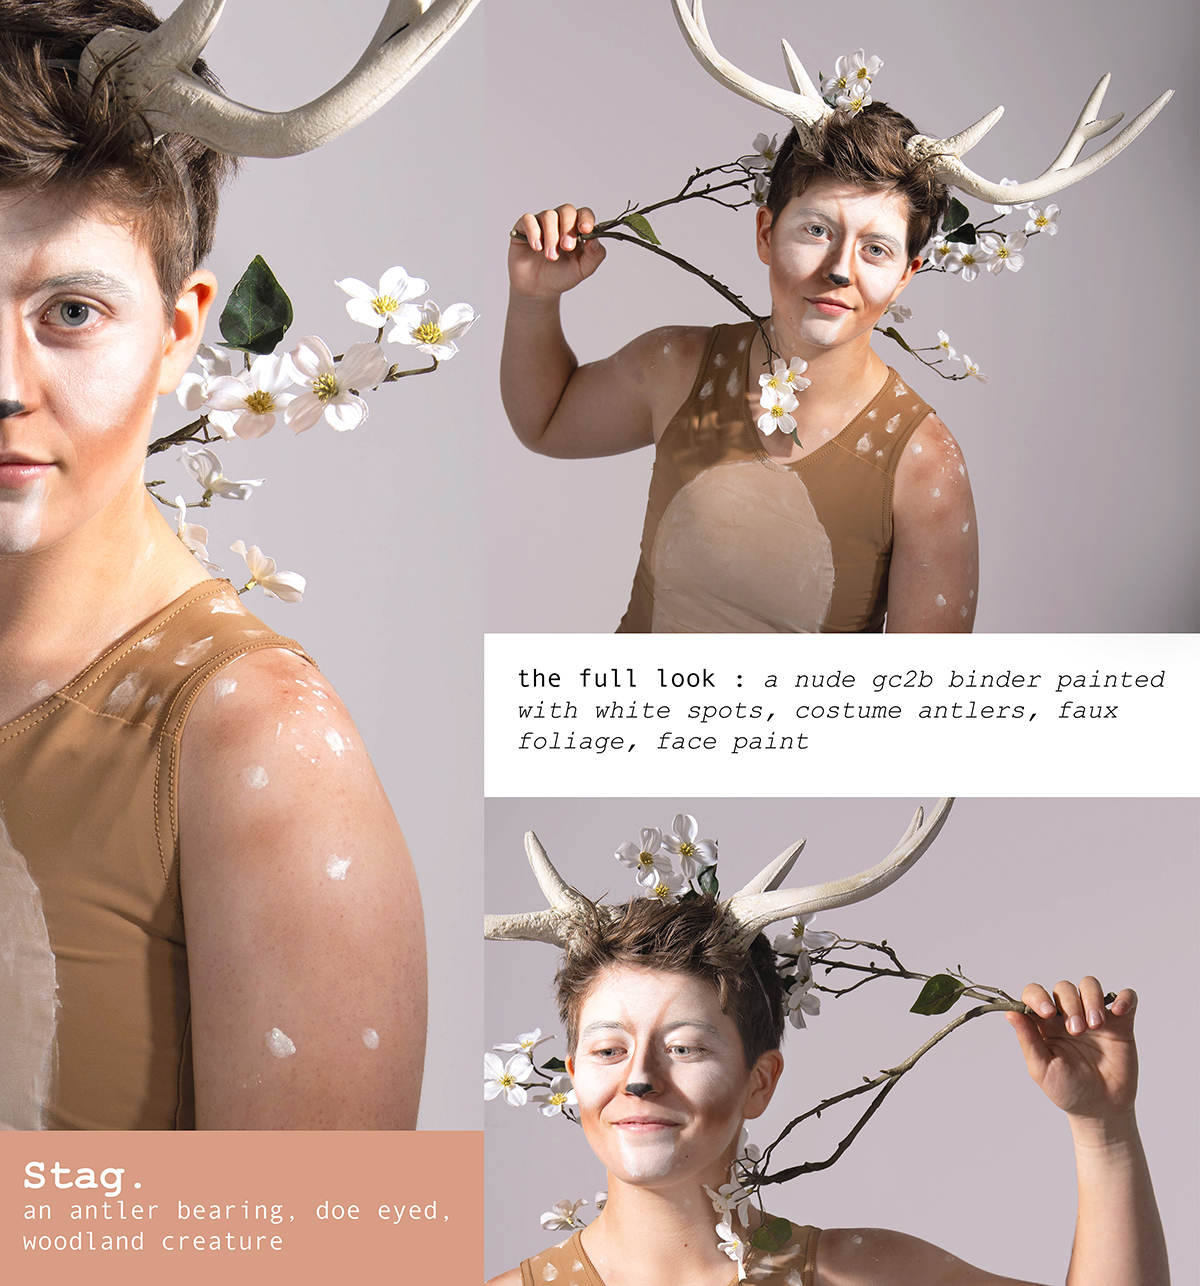 Stag. an antler bearing, doe eyed woodland creature. the full look: 1 / A Nude gc2b Binder painted with white spots 2 / Costume Antlers 3 / Faux Foliage 4 / White Face Paint